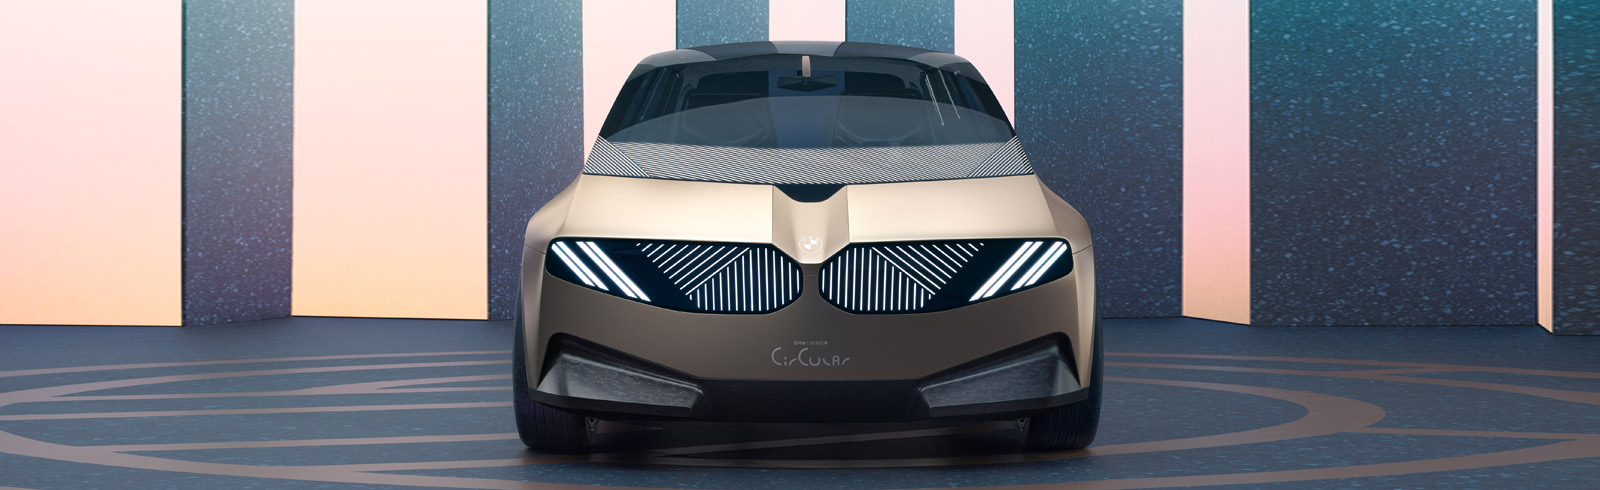 The BMW i Vision Circular - the ultimate driving machine